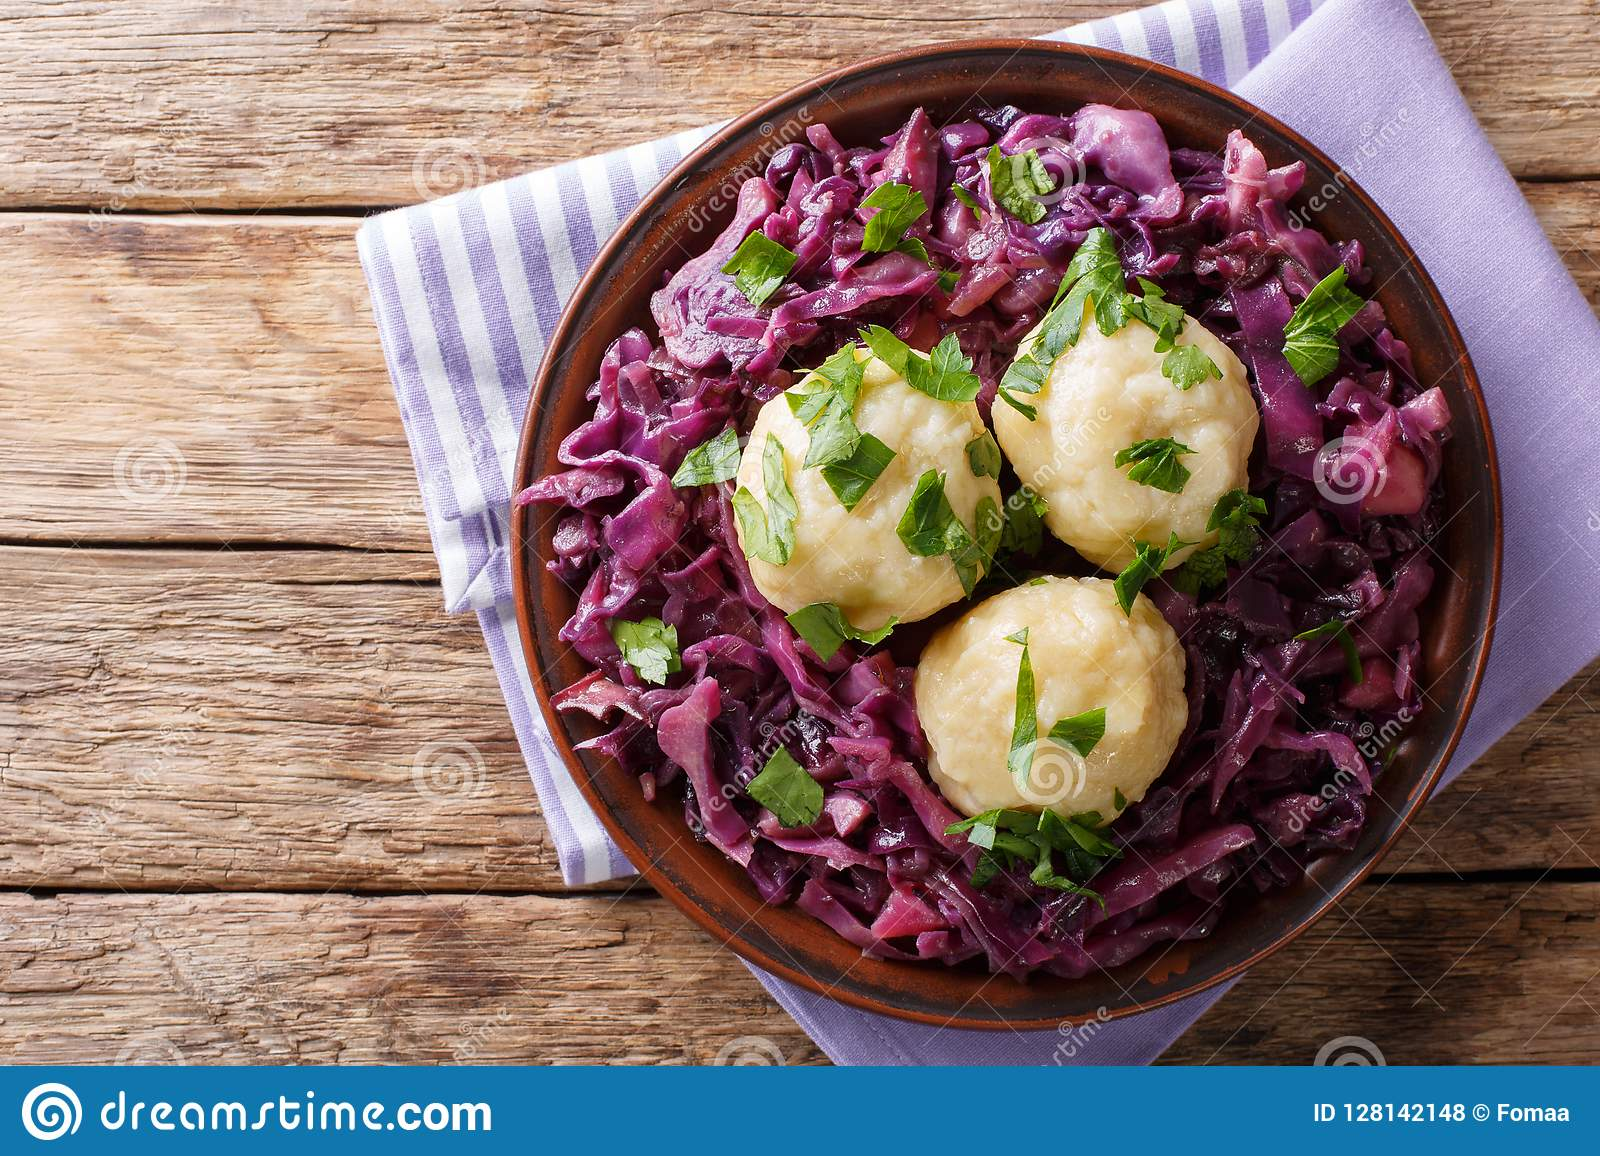 German food knodel potato dumplings and stewed red cabbage close